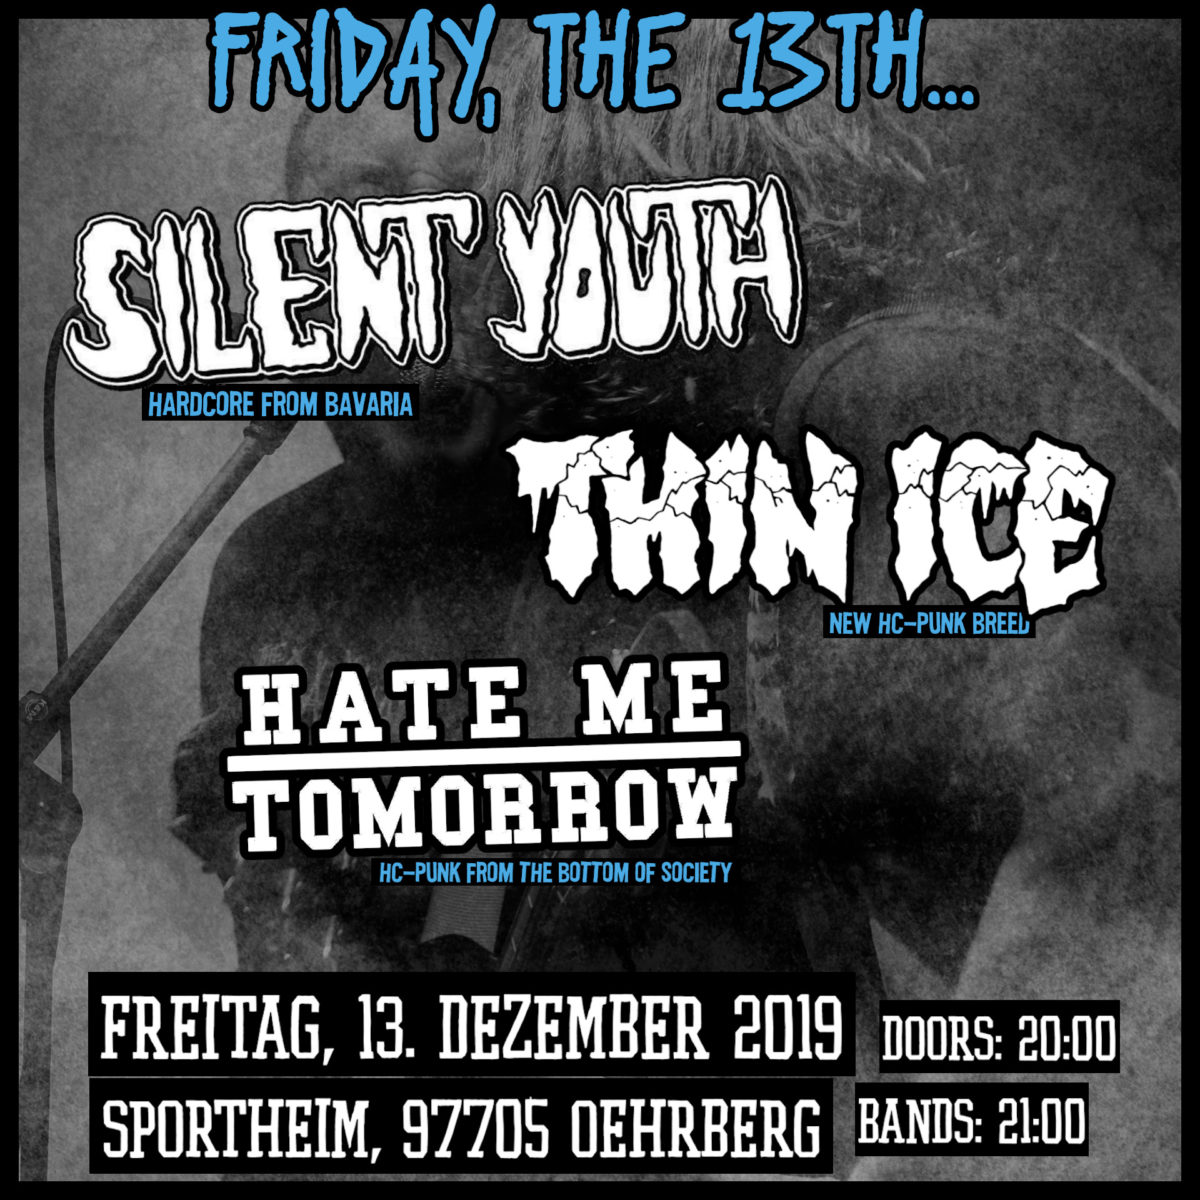 2019-12-13-Silent Youth, Hate Me Tomorrow